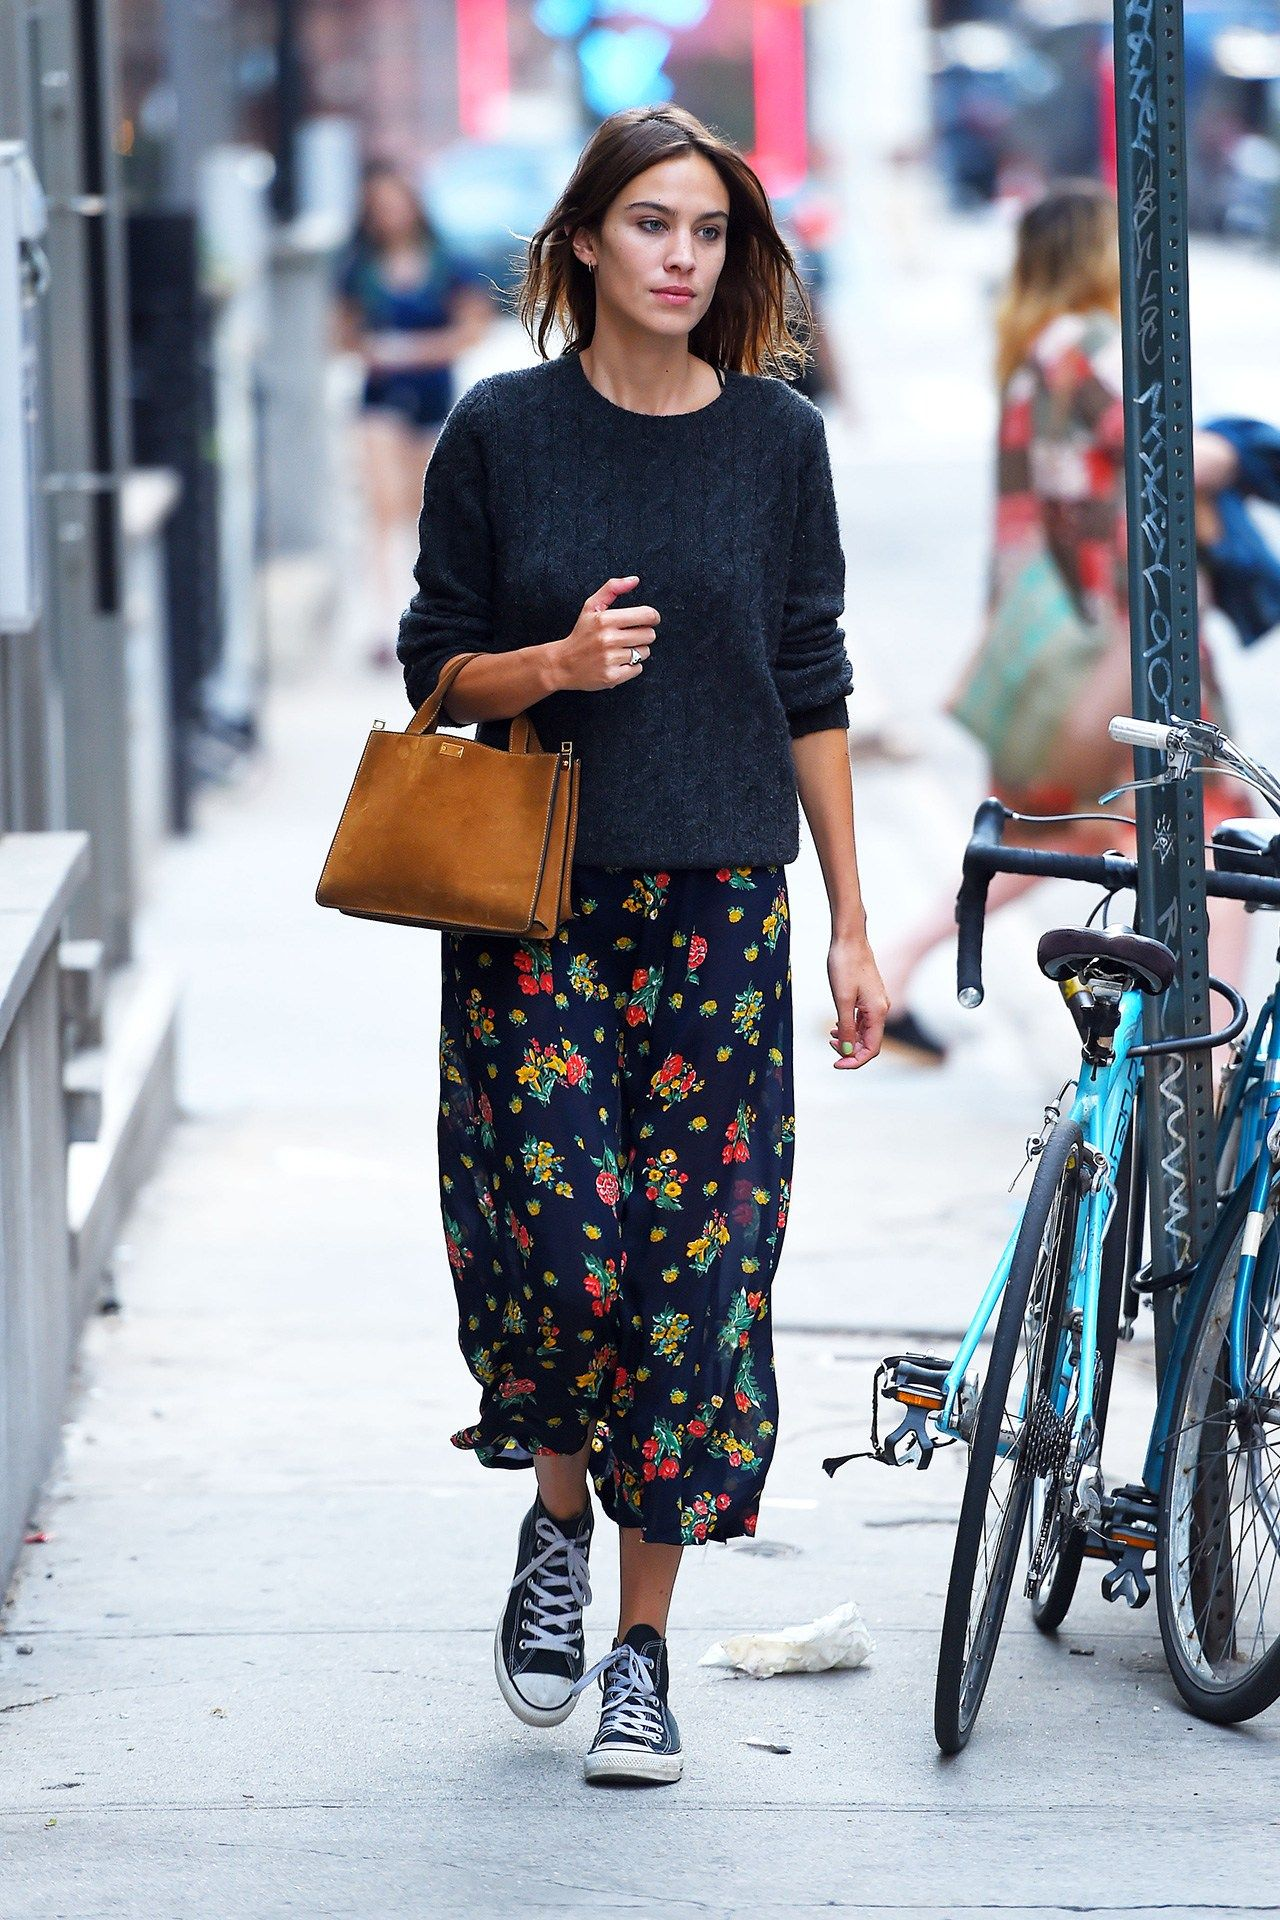 7b264f716 Best dressed - Alexa Chung - click through to see who joins her in this  week's